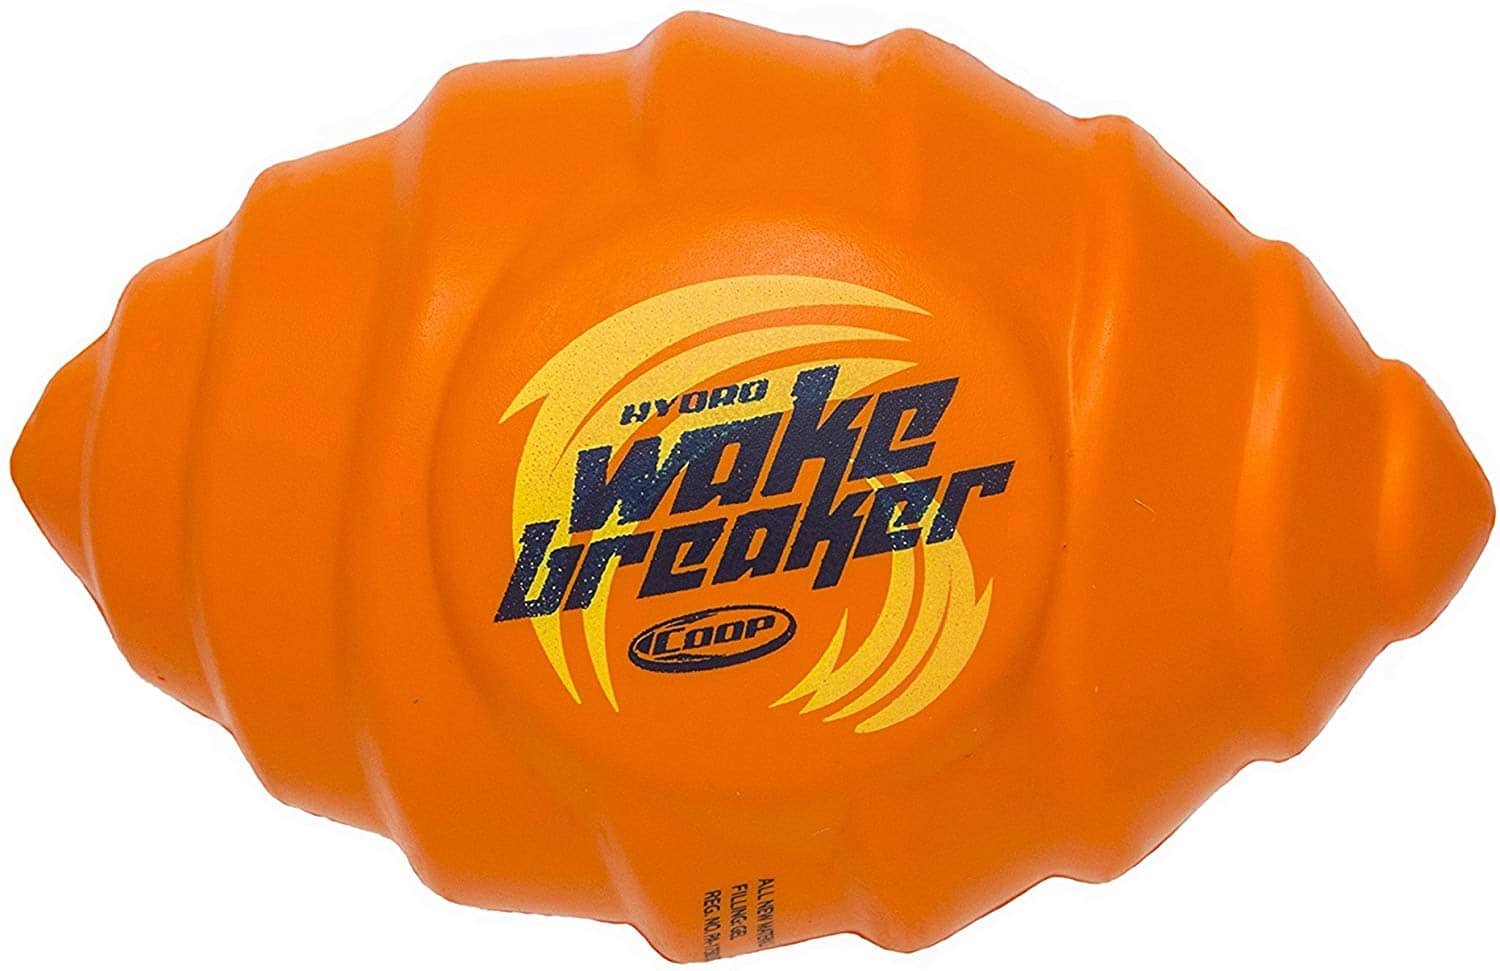 Coop Hydro Wake Breaker Football, Orange - $7.00 at Amazon + free shipping with prime